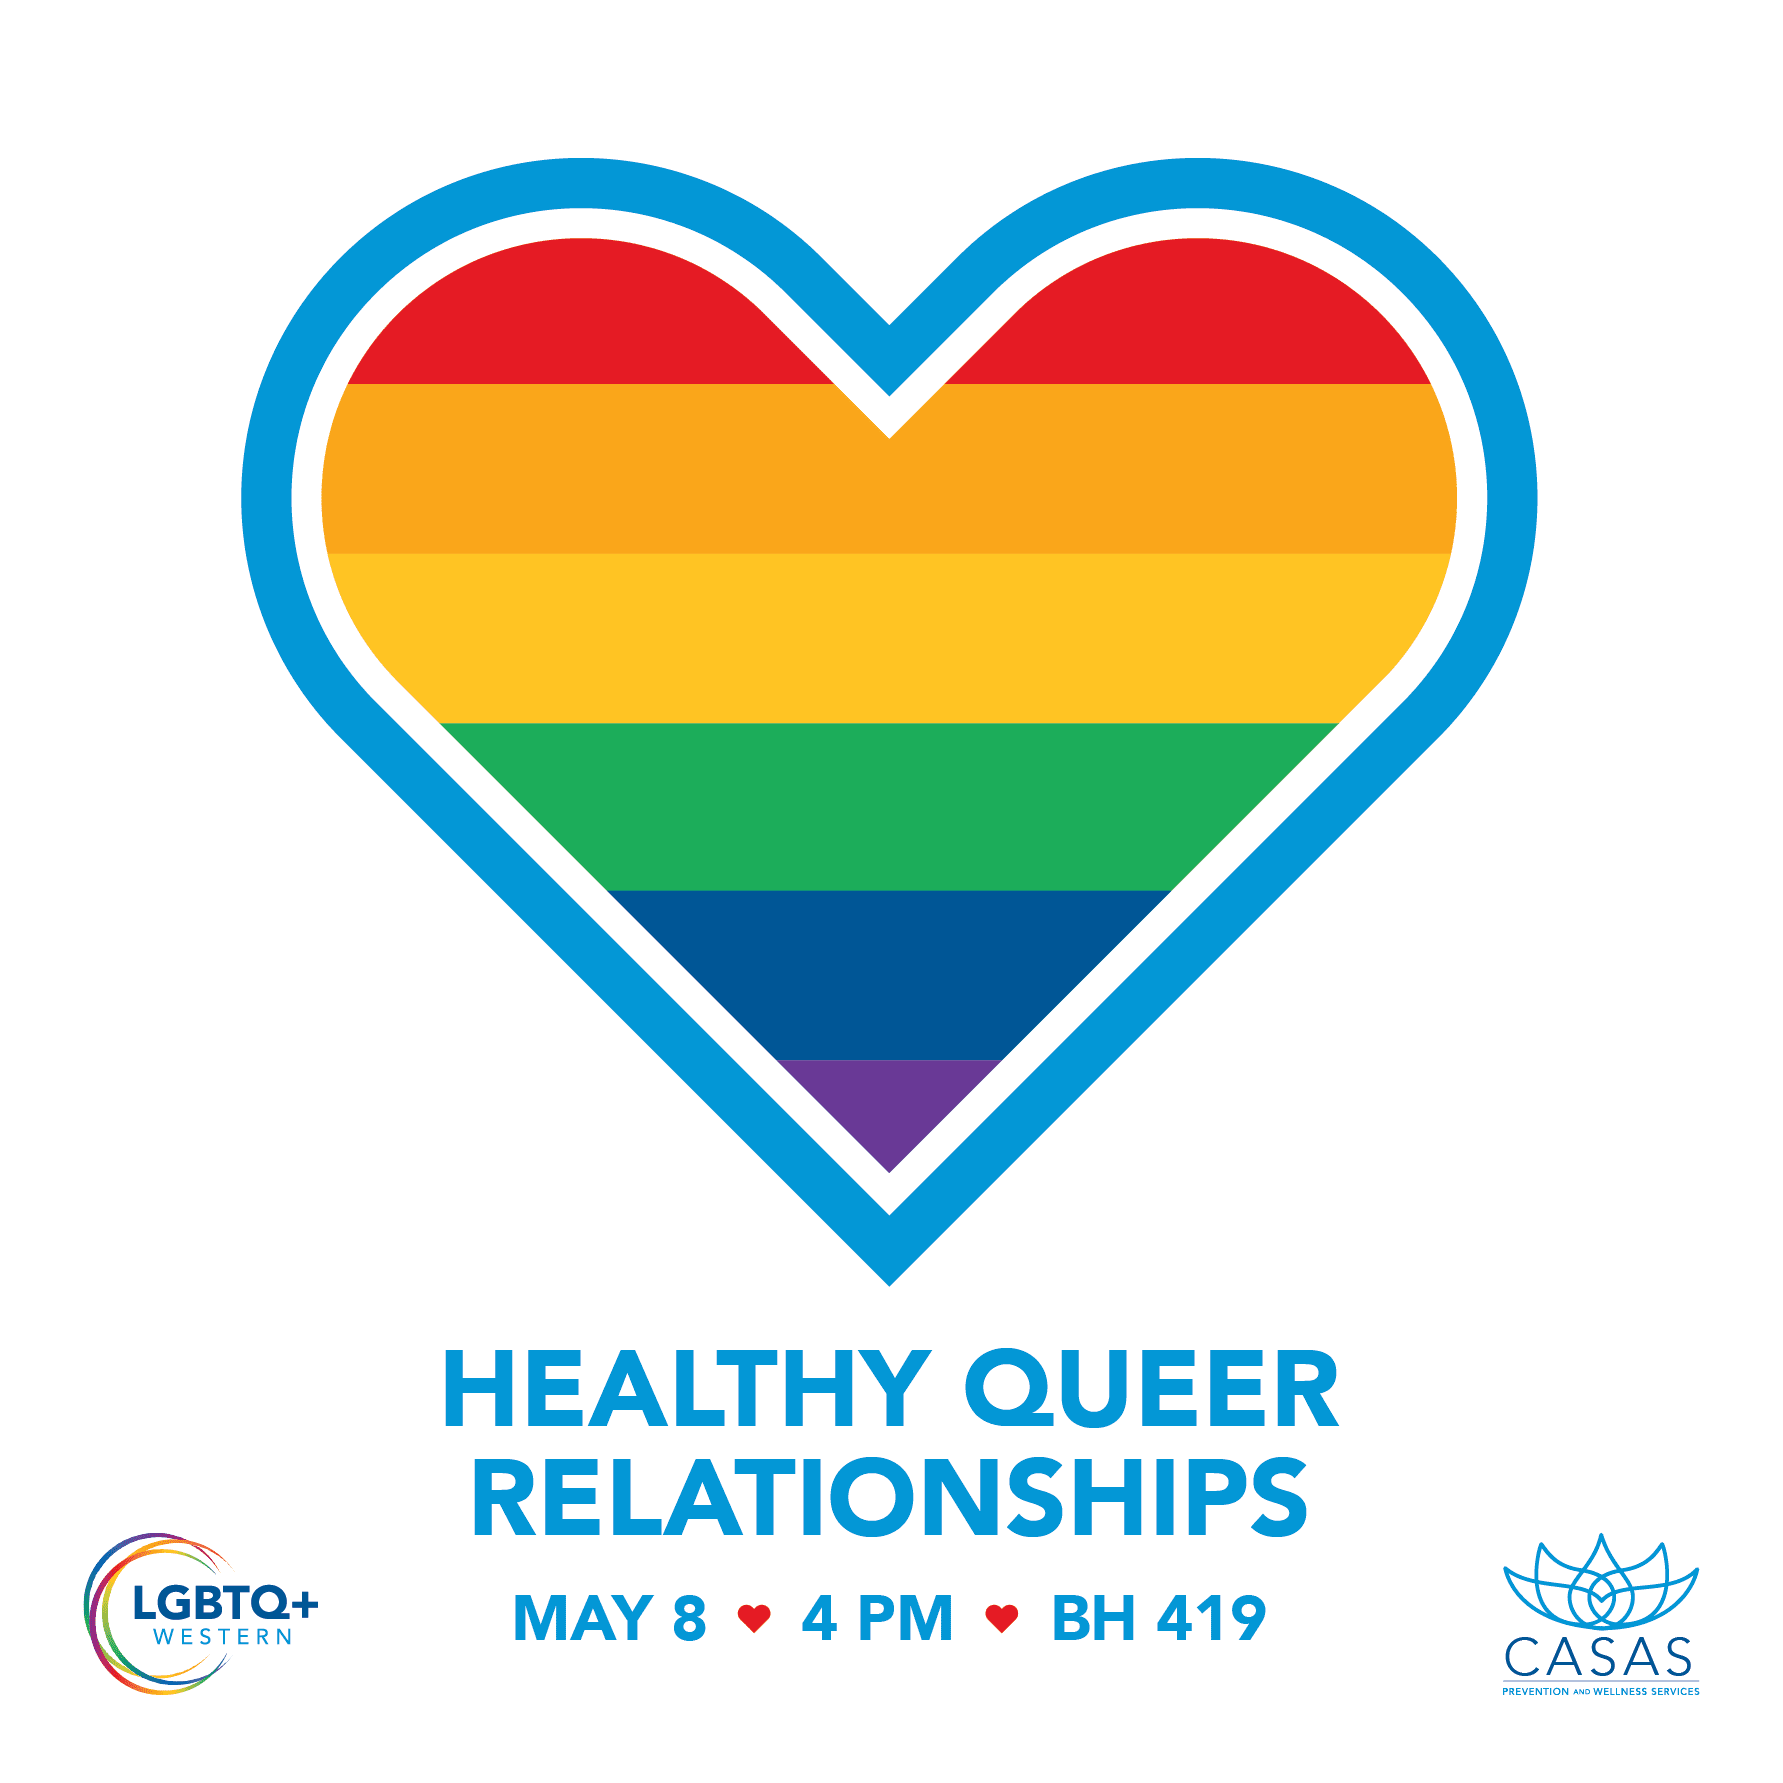 Healthy Queer Relationships workshop May 8, 2019. Image of heart filled in with rainbow colors.